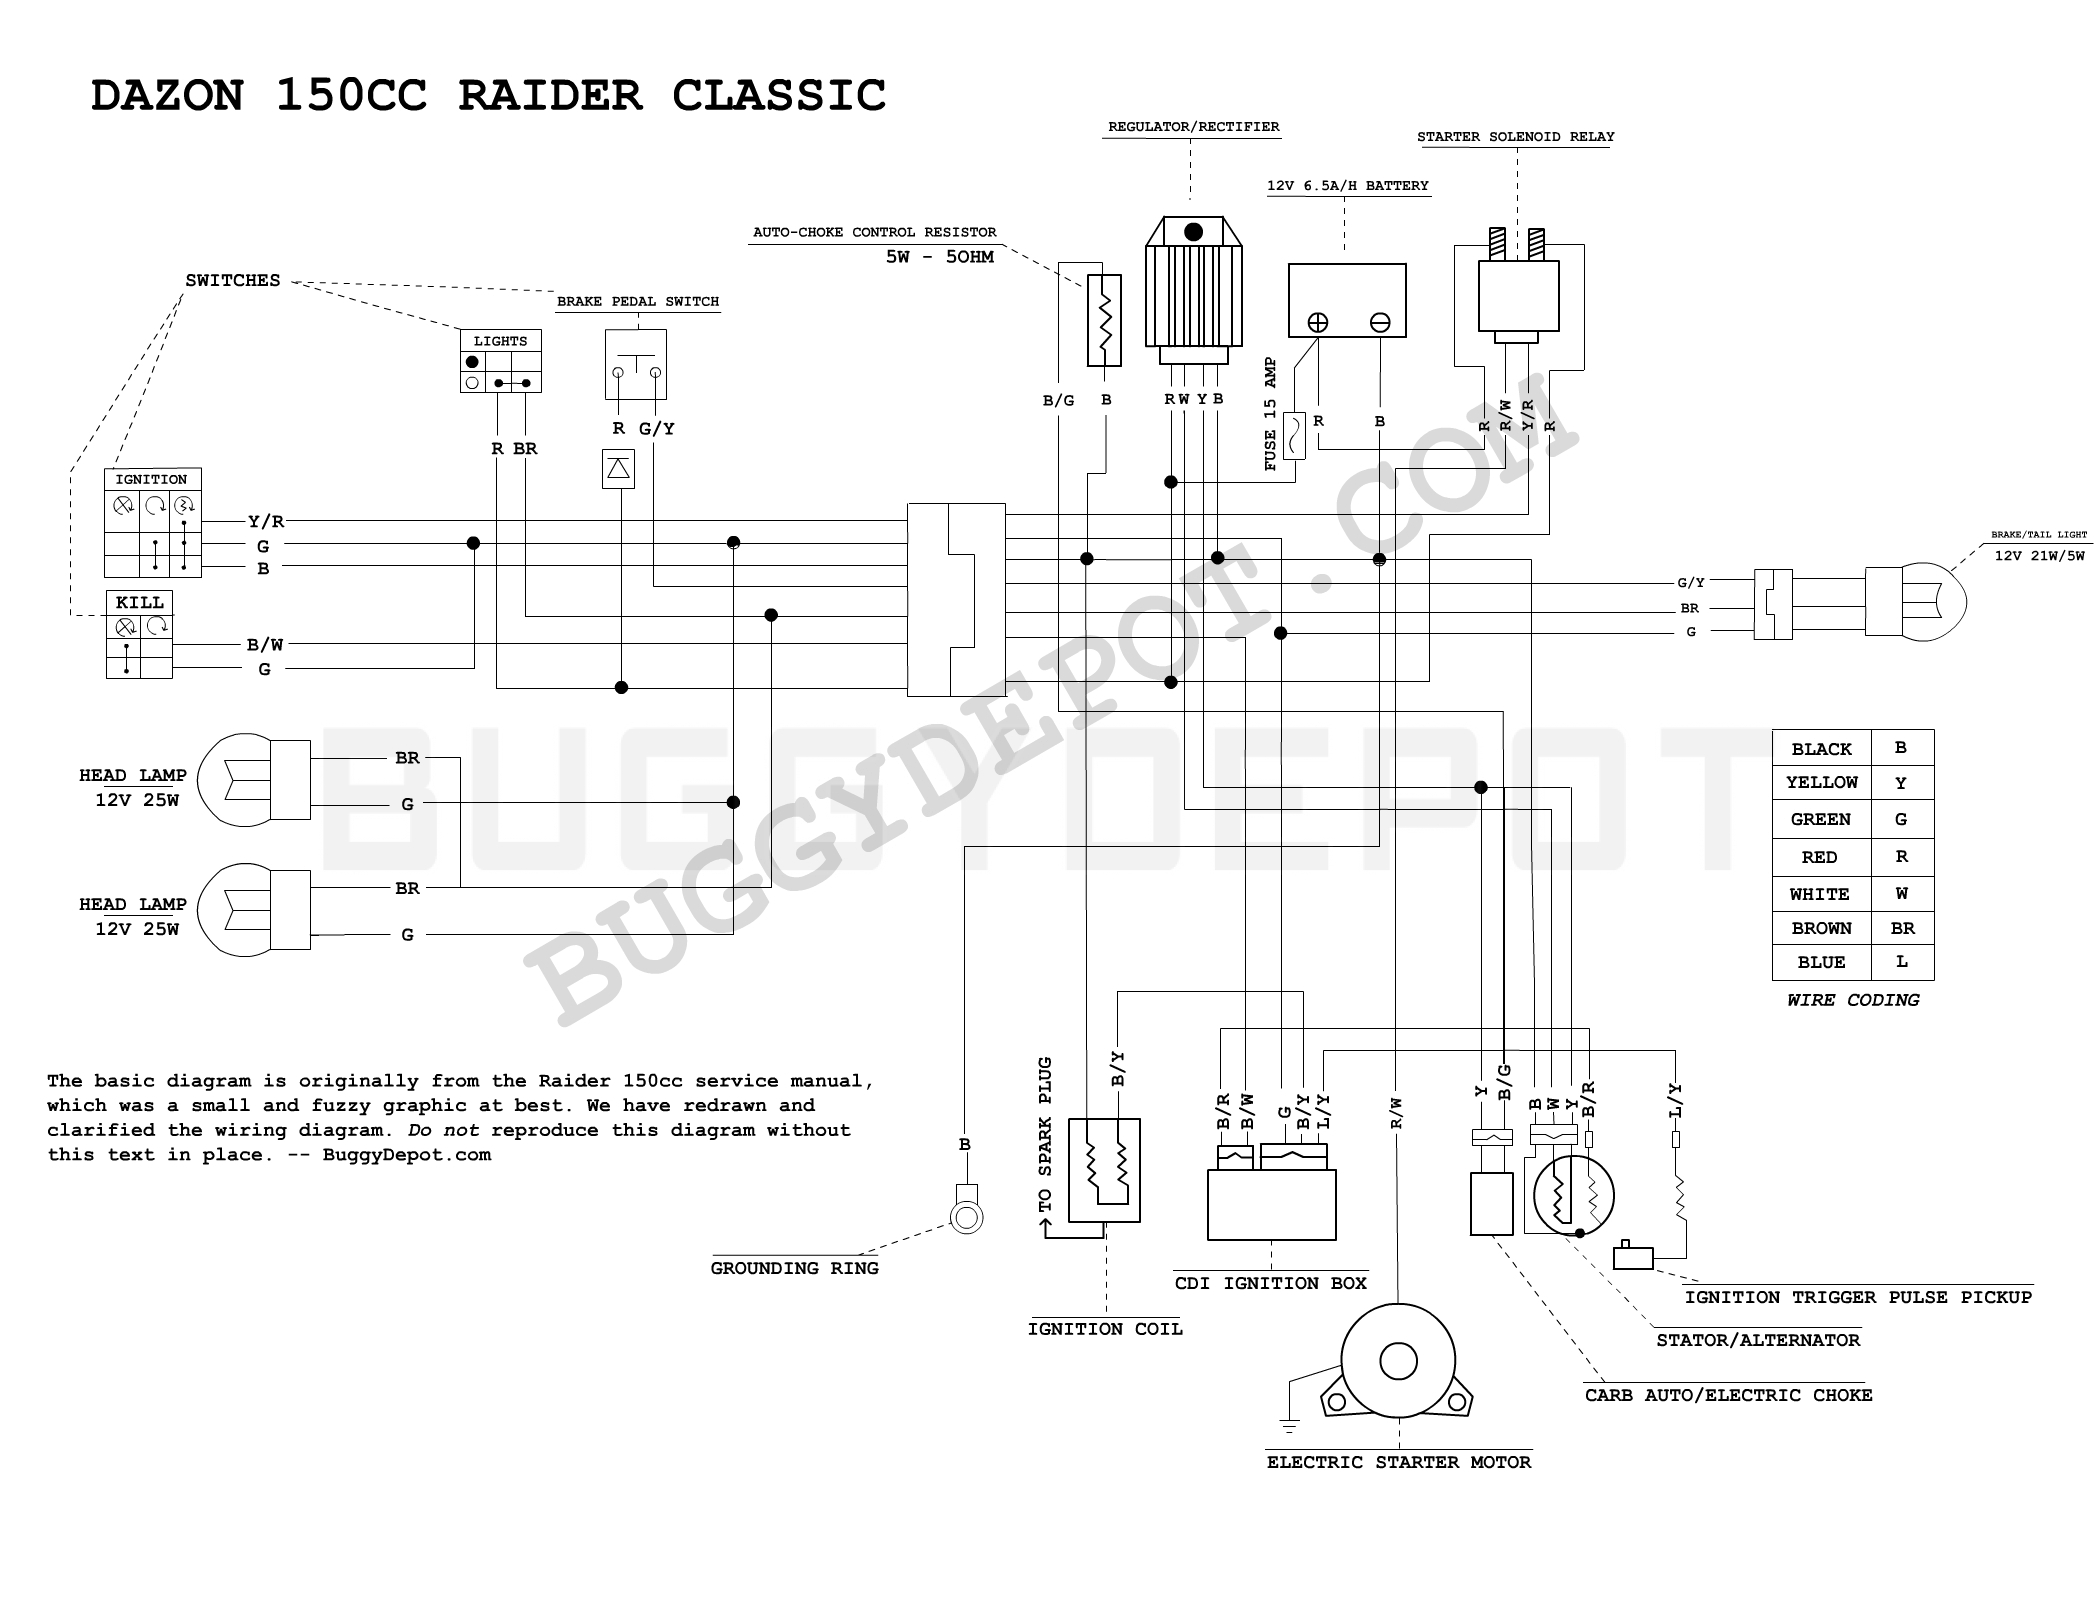 ... Dazon Raider Classic – Wiring Diagram